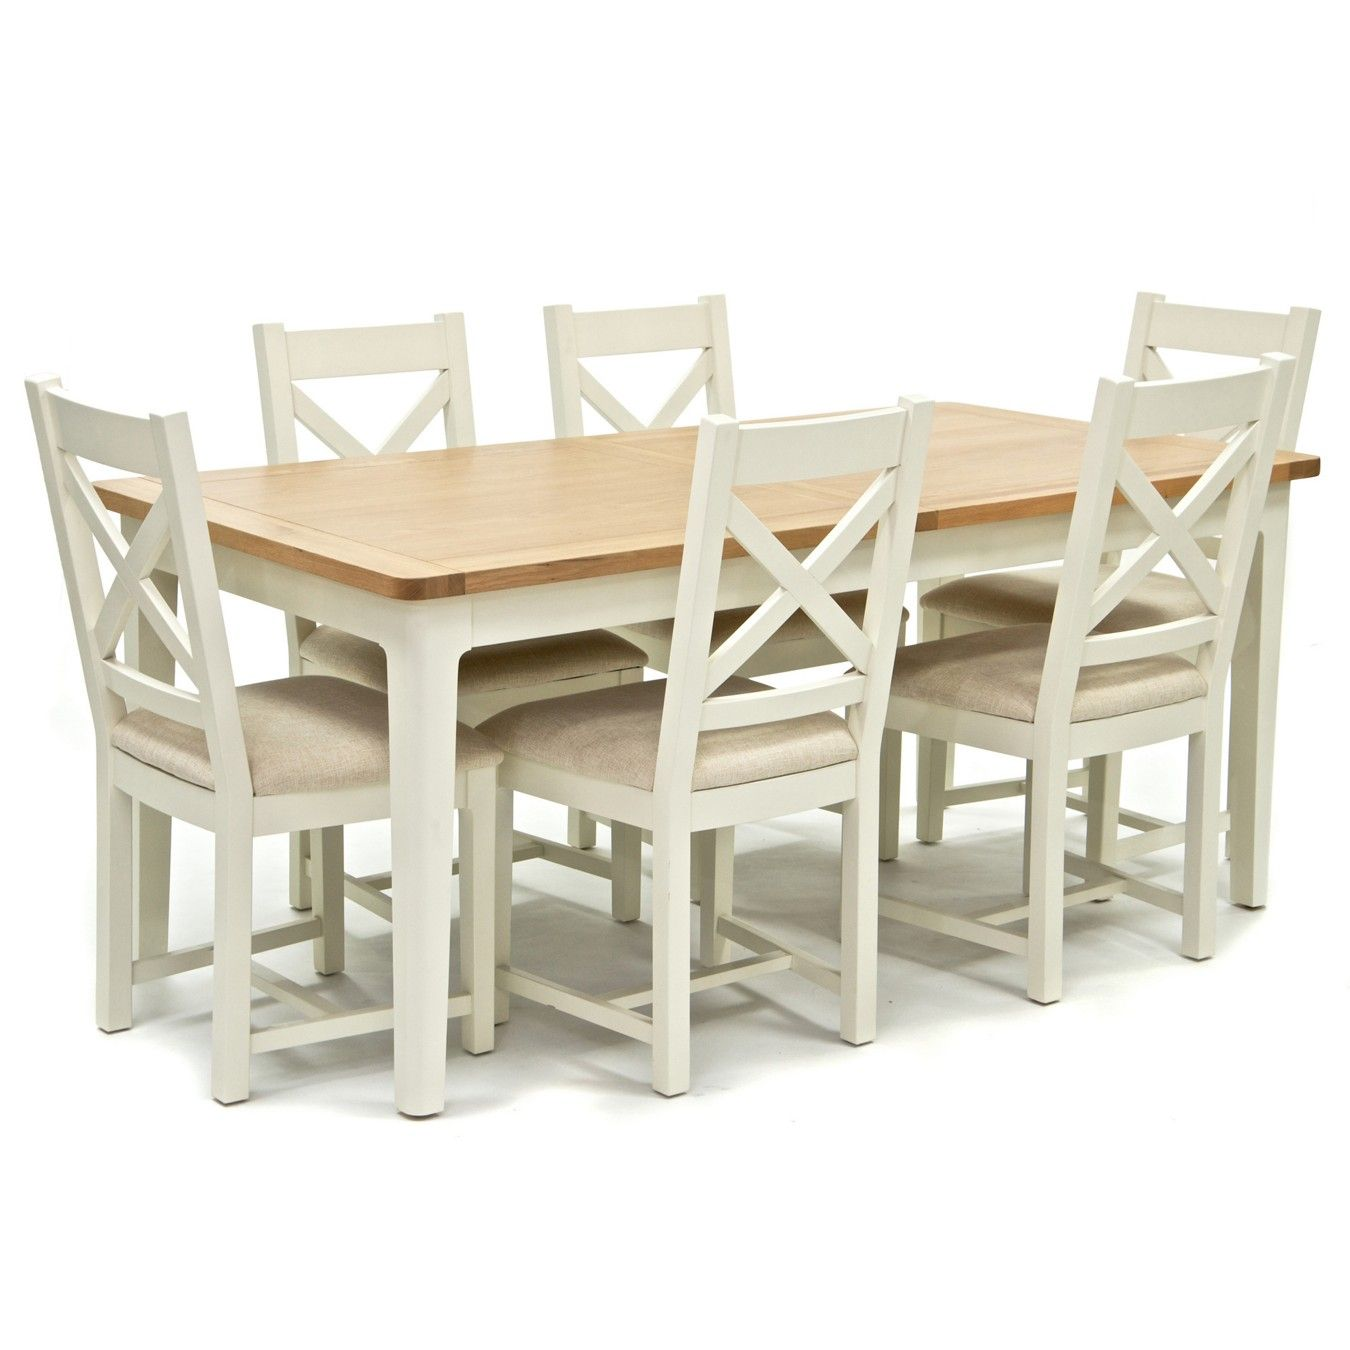 Oak Top Newquay Large Extending Dining Table And 6 Cross Back Dining Chairs With Cream Seats Cross Back Dining Chairs Dining Table Extendable Dining Table